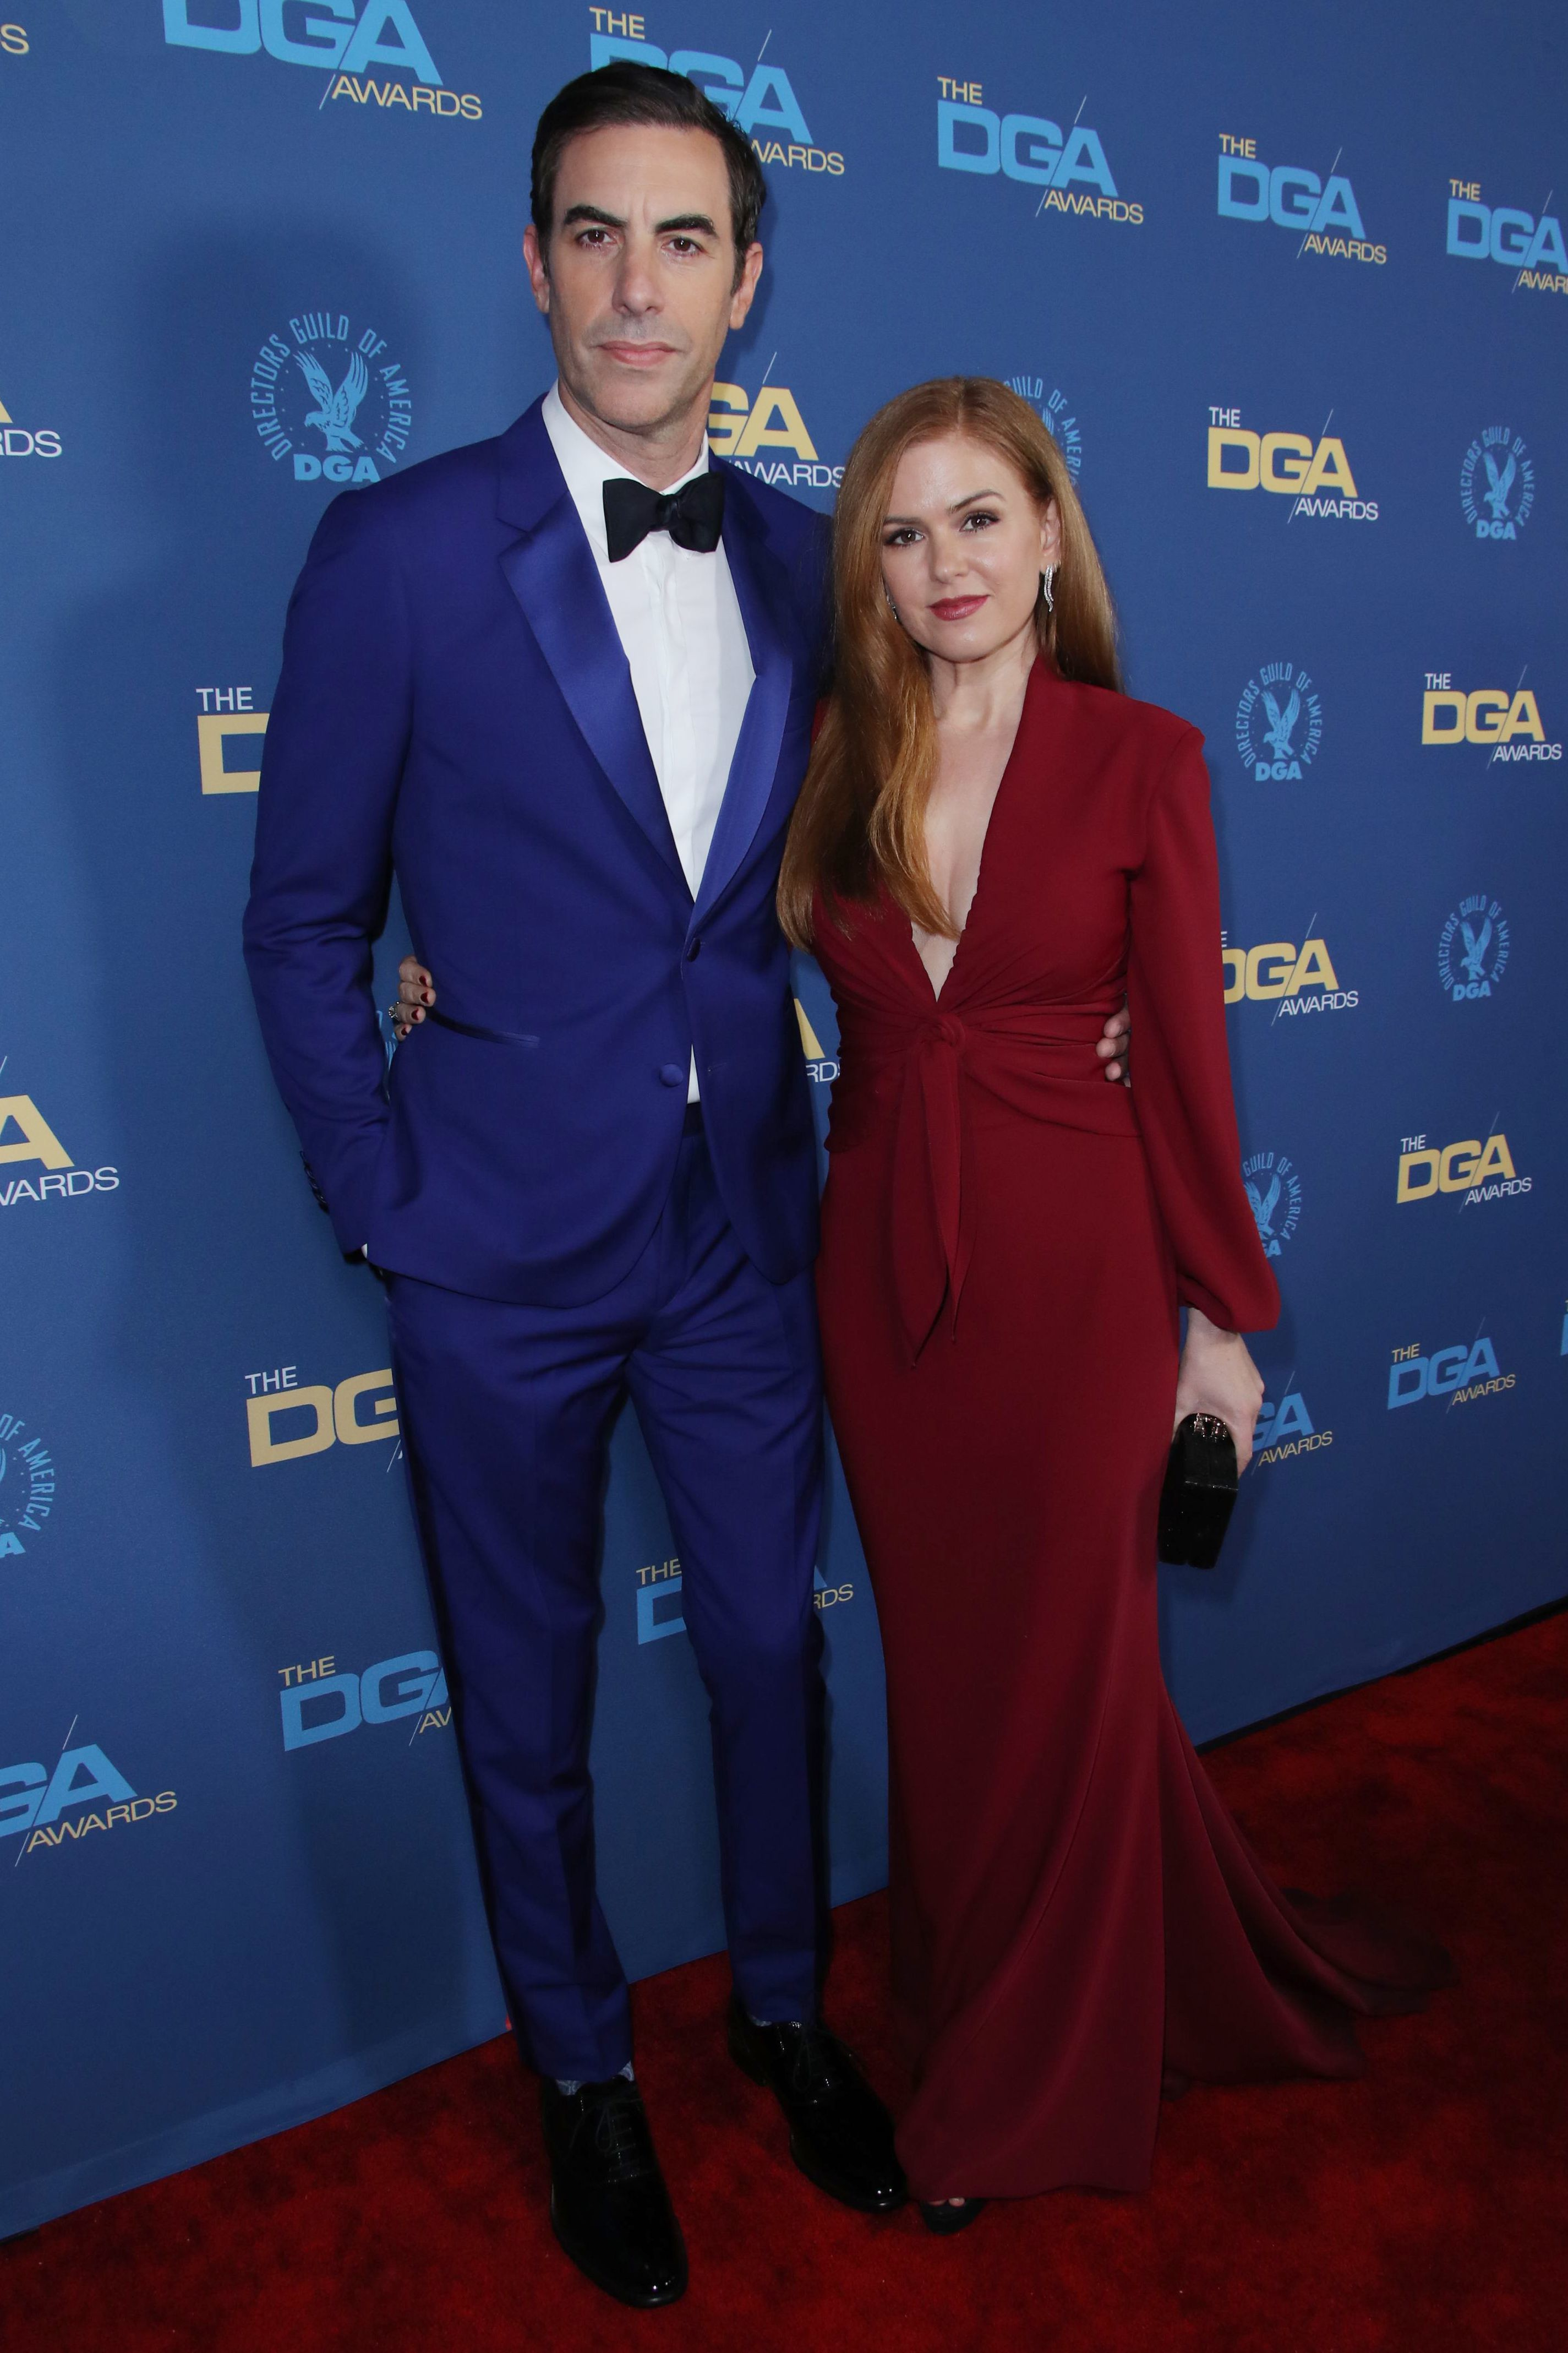 Sacha Baron Cohen and Isla Fisher attend the 71st Annual Directors Guild of America Awards in Los Angeles on Feb. 2, 2019.